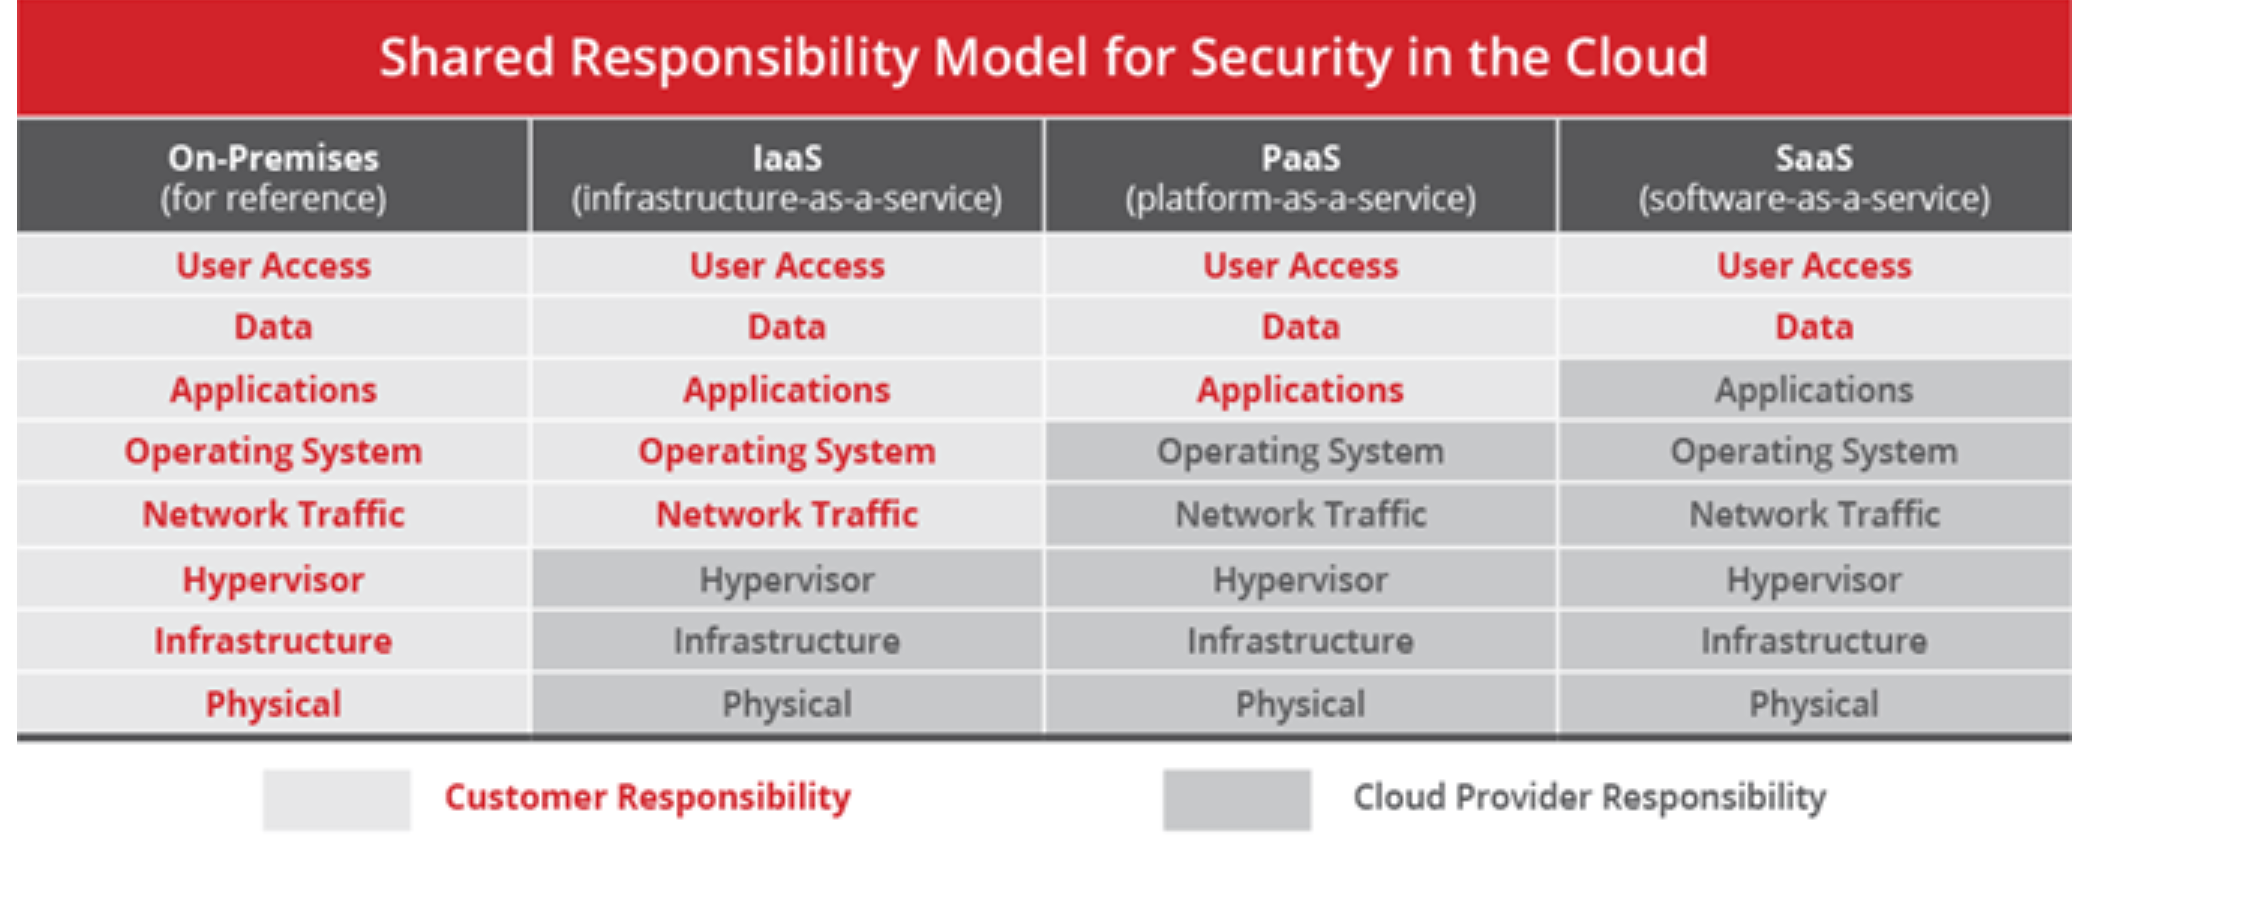 responsibility model for security in the cloud according to mcafee